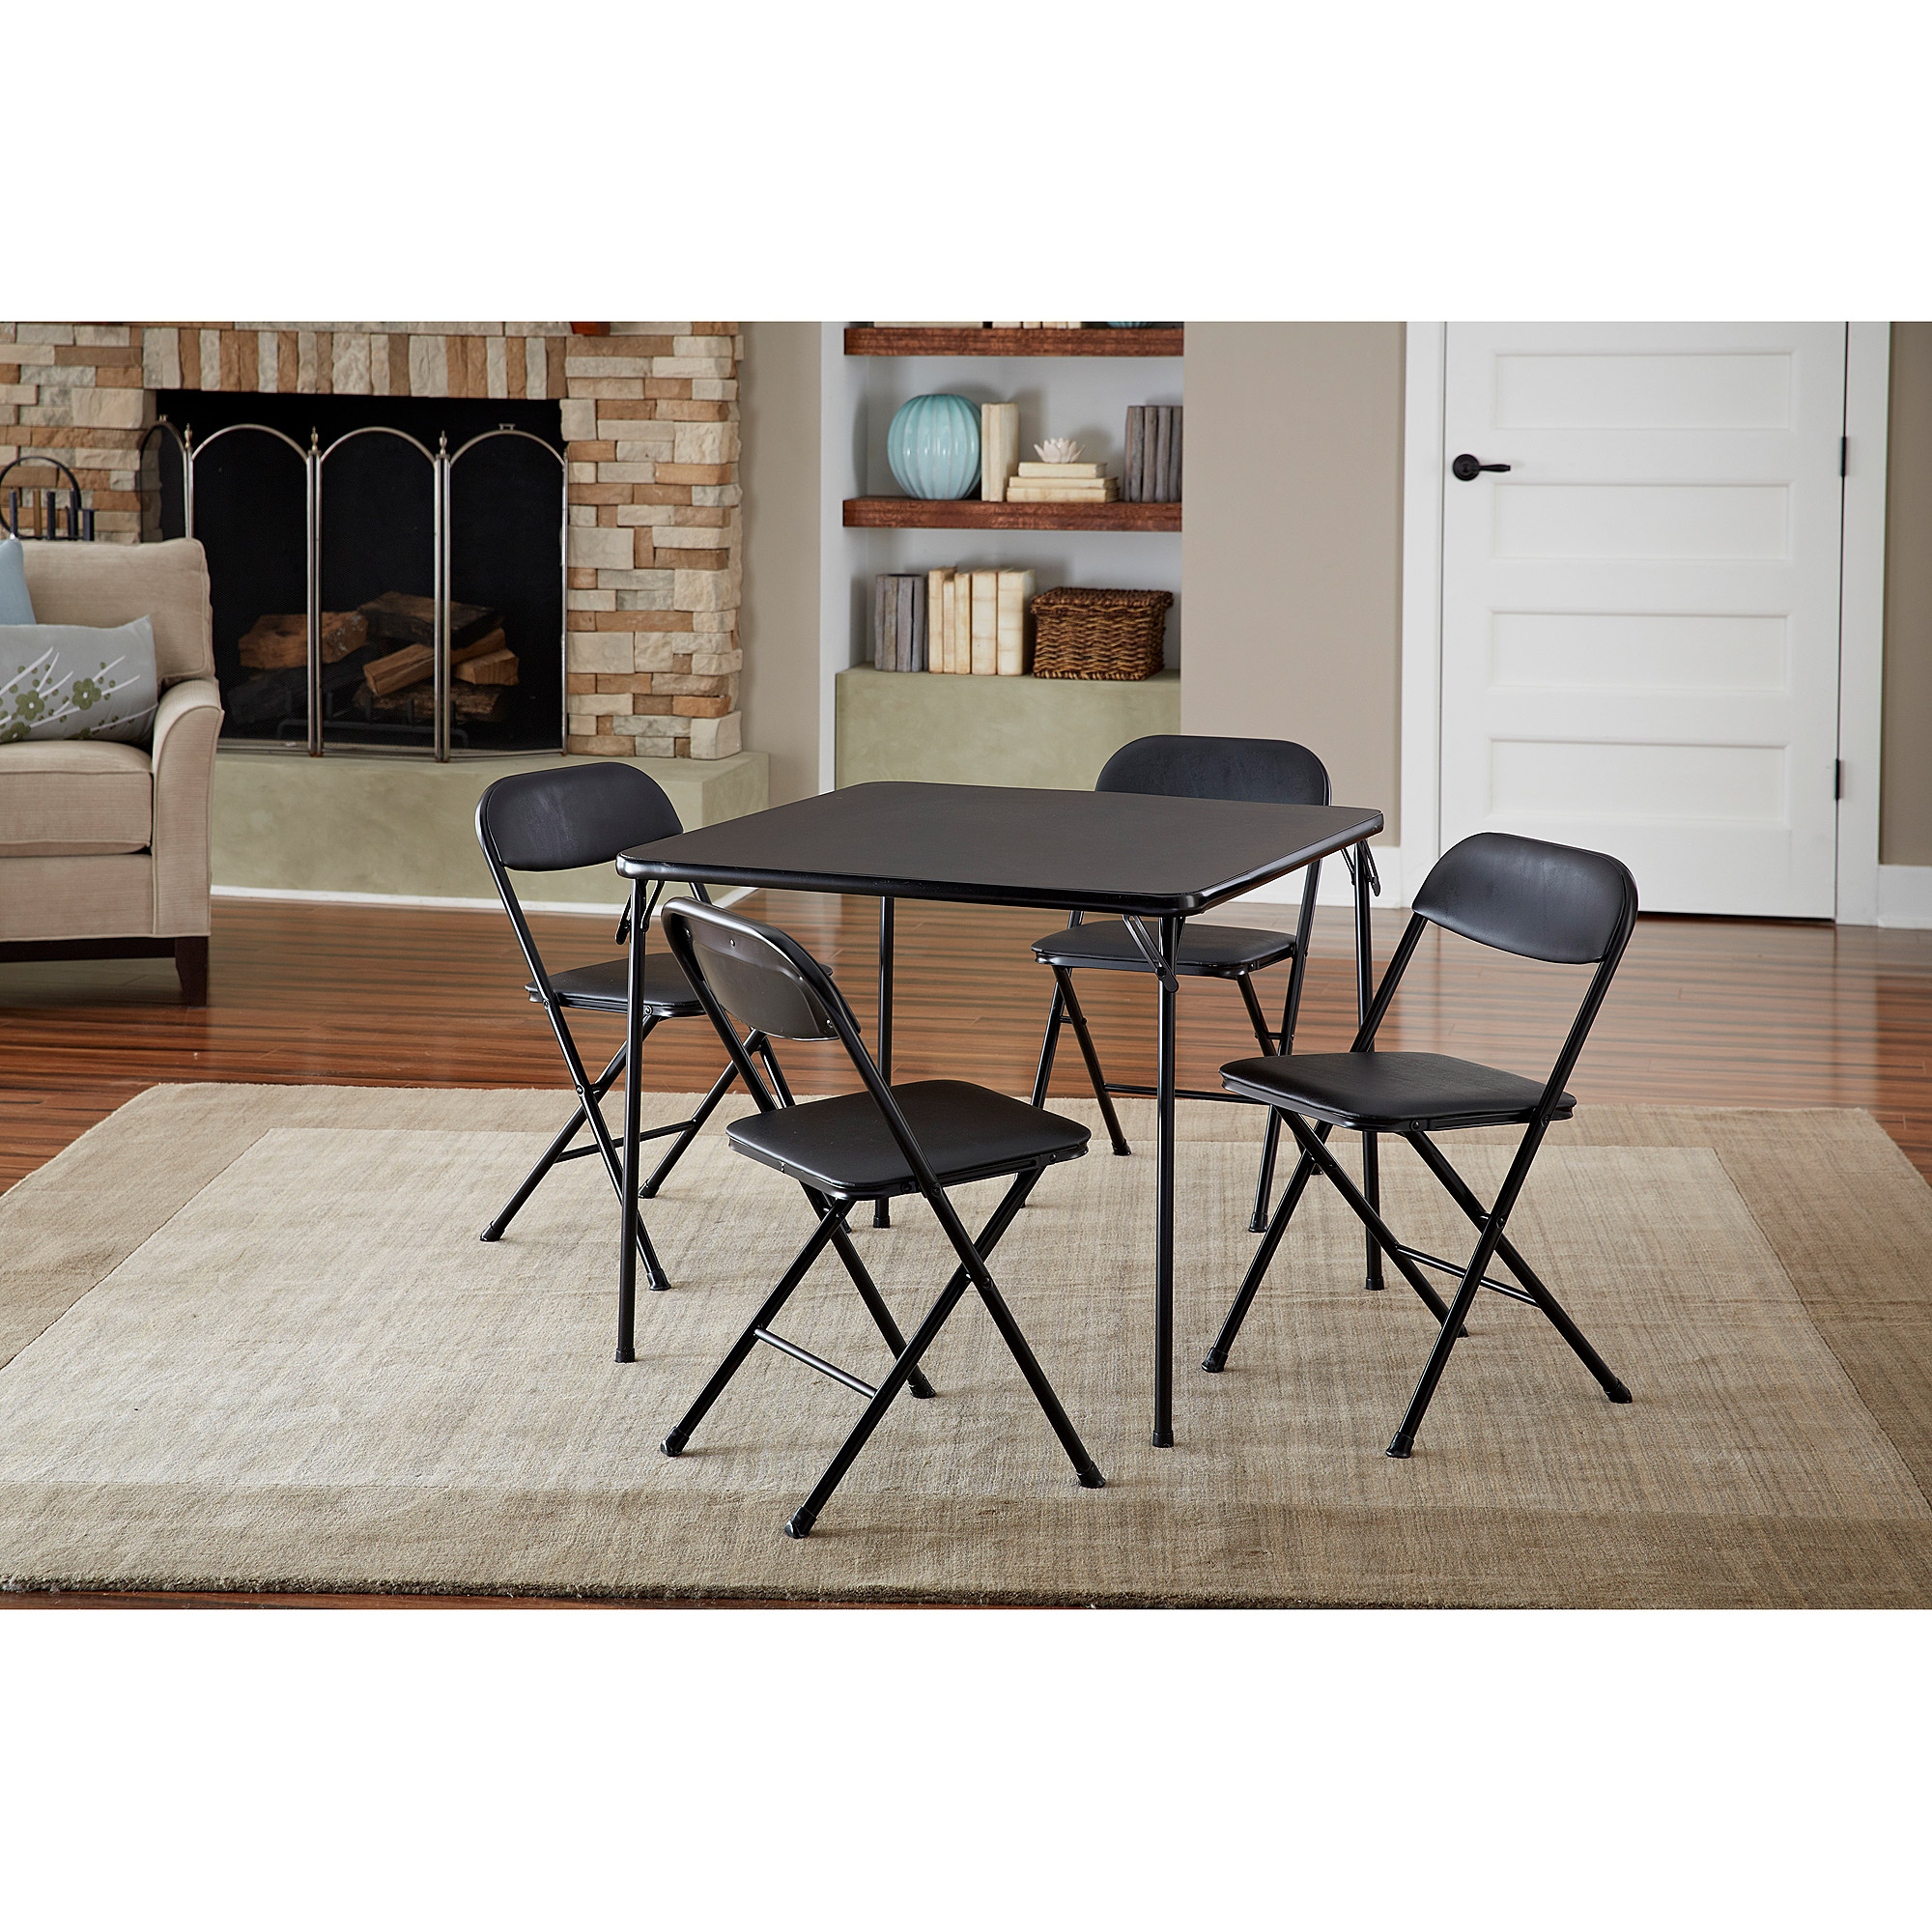 Cosco Piece Card Table Set Black Walmartcom - Black dining room table and chair sets